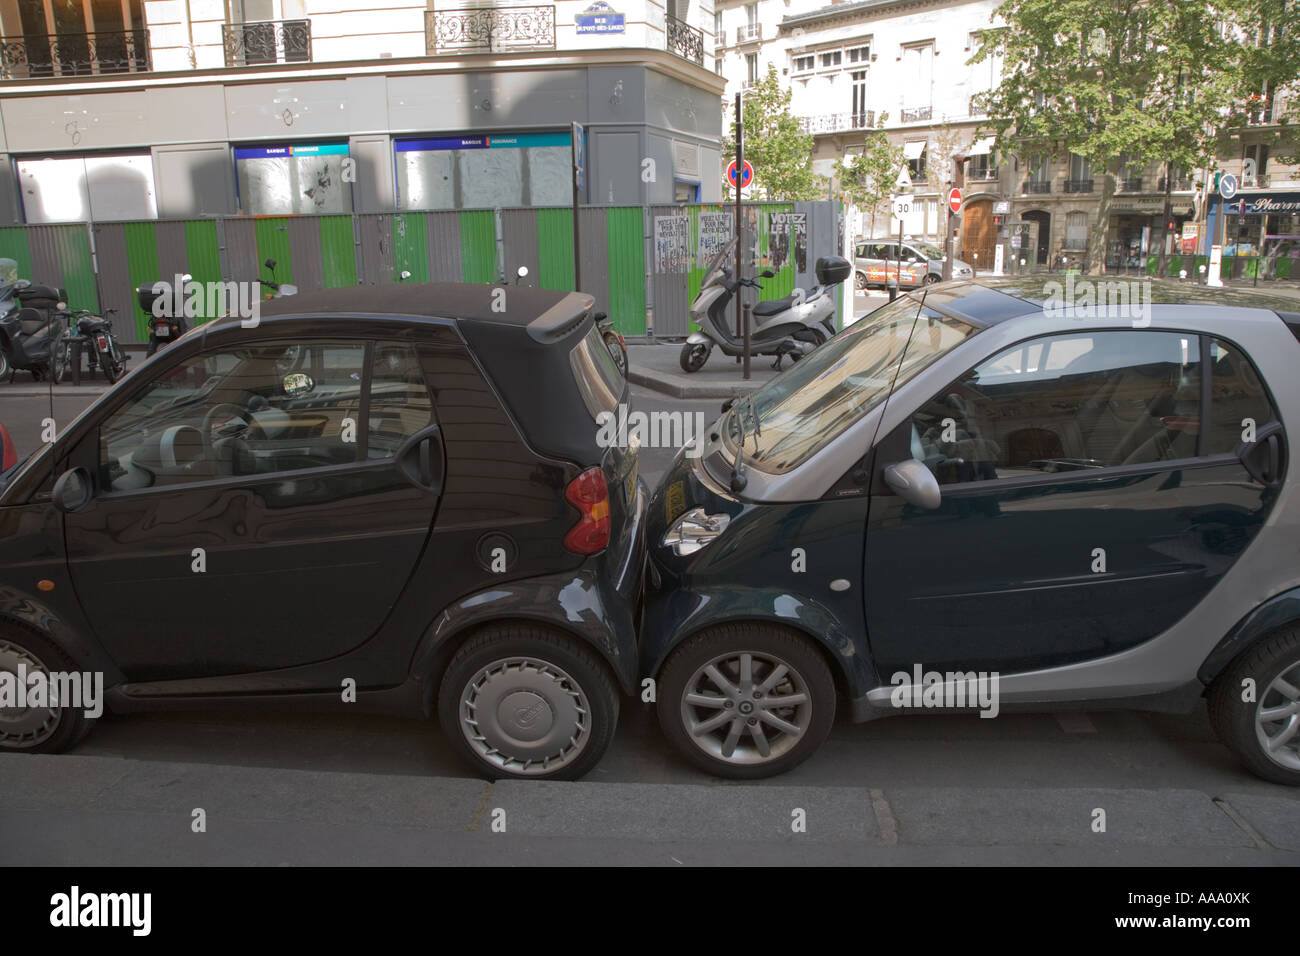 smart cars parked touching bumper to bumper in paris stock photo royalty free image 12563130. Black Bedroom Furniture Sets. Home Design Ideas